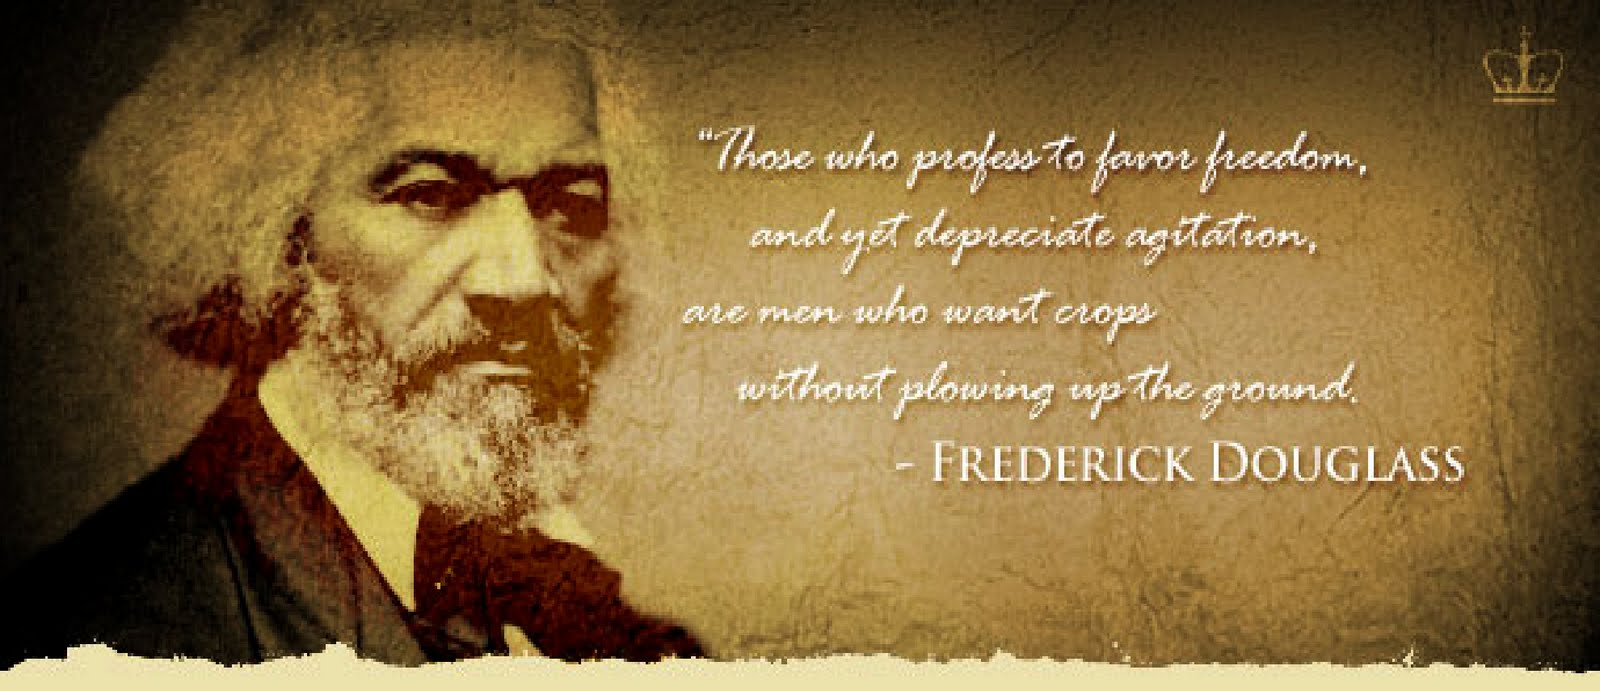 Slavery Quotes Anti Slavery Quotes Frederick Douglass Picture